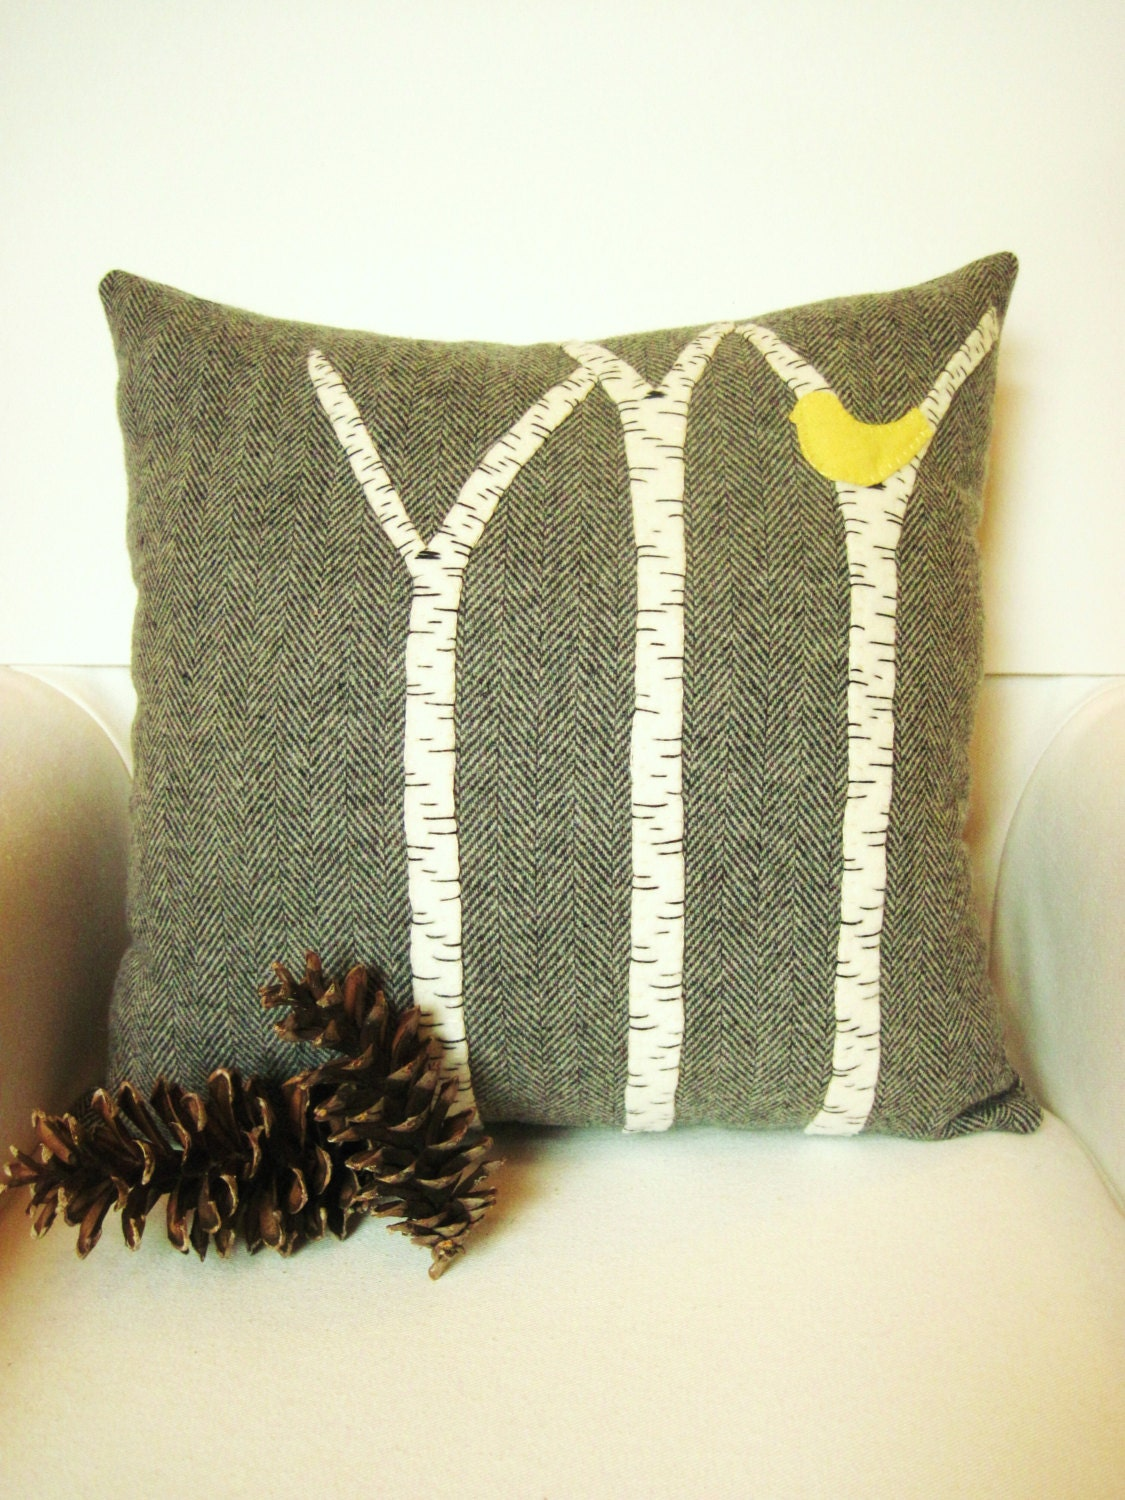 Decorative Throw Pillow / Birch Tree Pillow / Wool Pillow / Rustic Cabin Pillow / Gray Pillow  / Yellow, Red, Blue Bird - AwayUpNorth